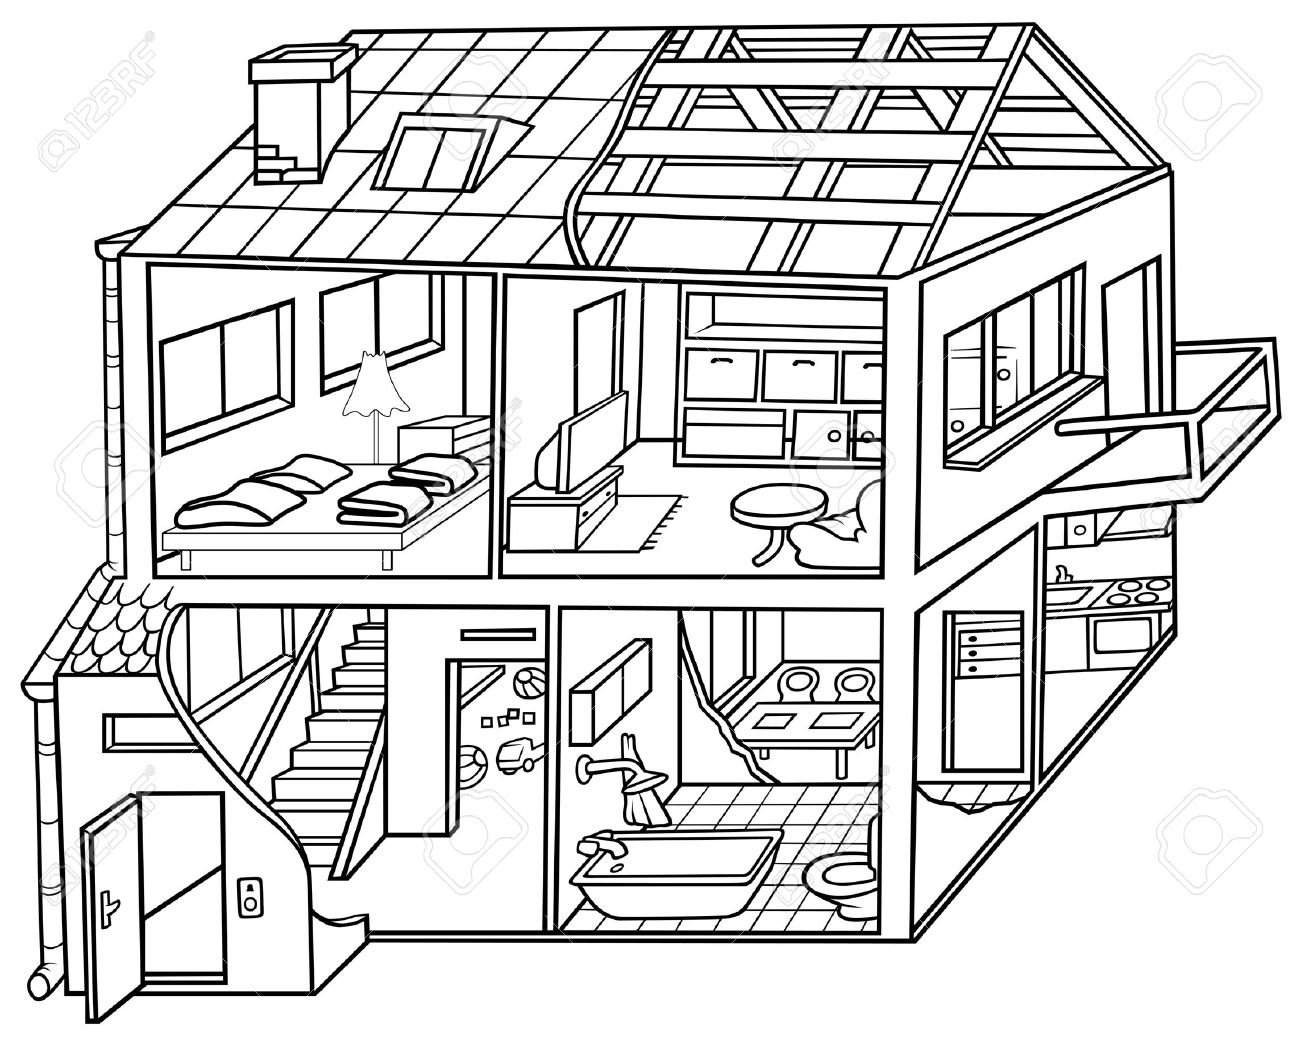 Rooms Of The House Clipart Black And White.